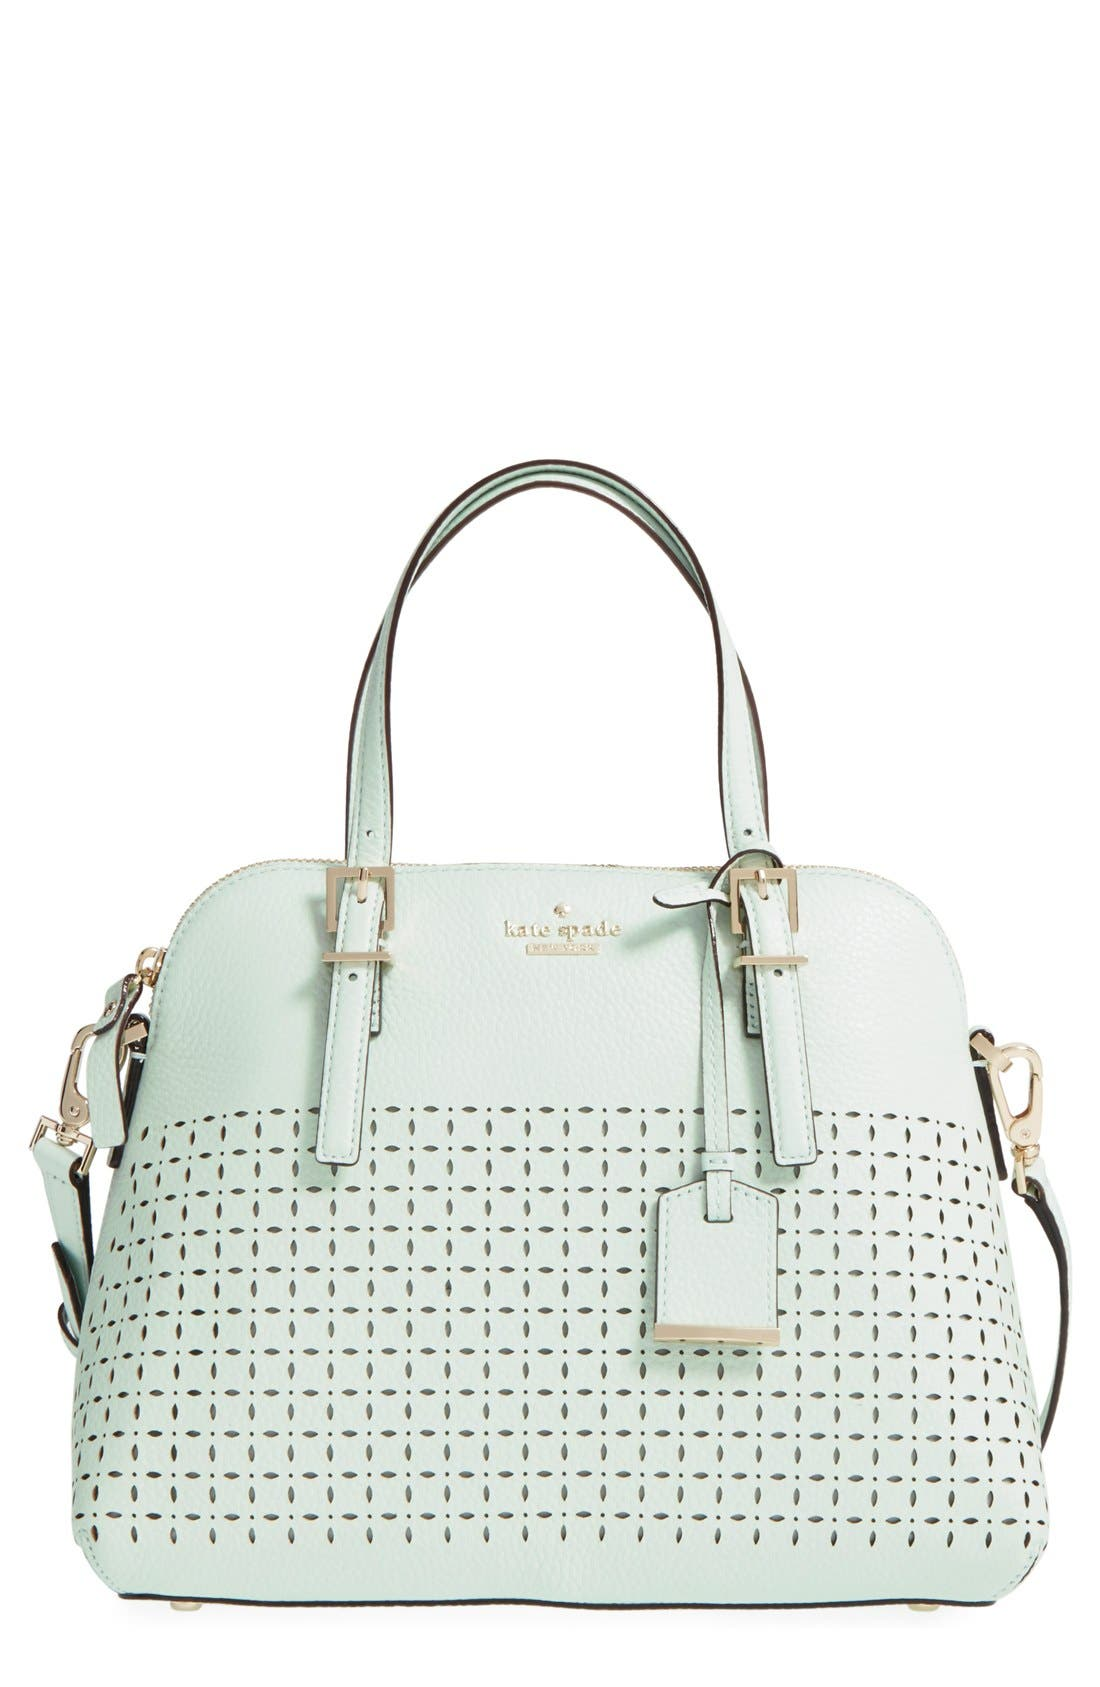 Main Image - kate spade new york 'milton lane - maise' perforated leather satchel (Nordstrom Exclusive)